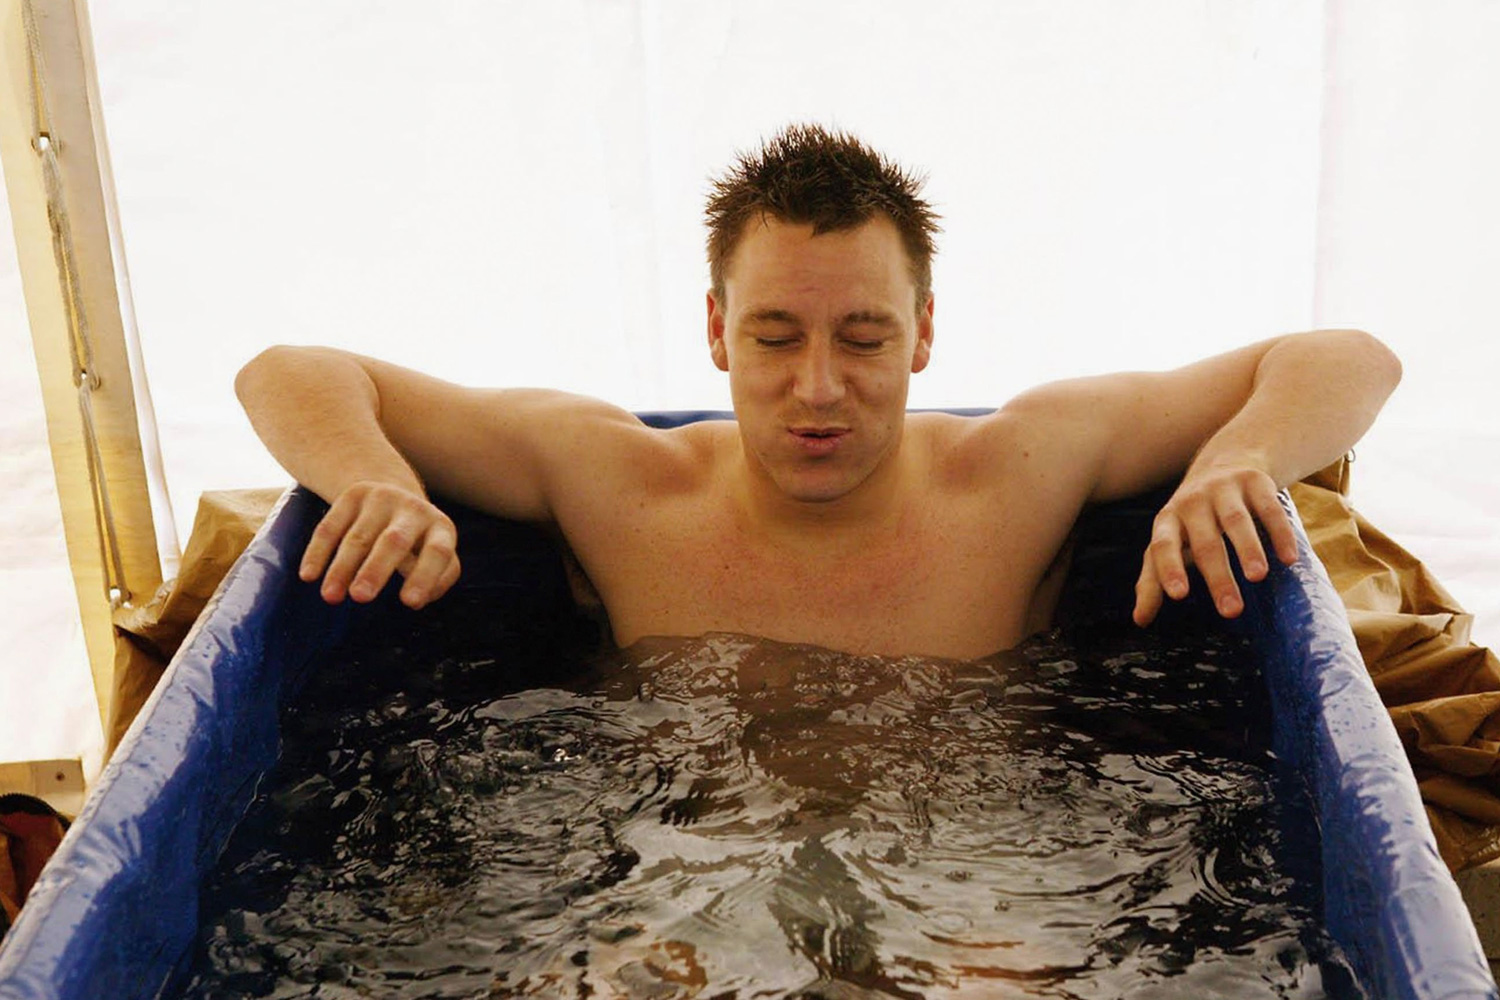 English defender John Terry sits in an ice bath to assist in recovery while at the squad's Lisbon training camp facility.